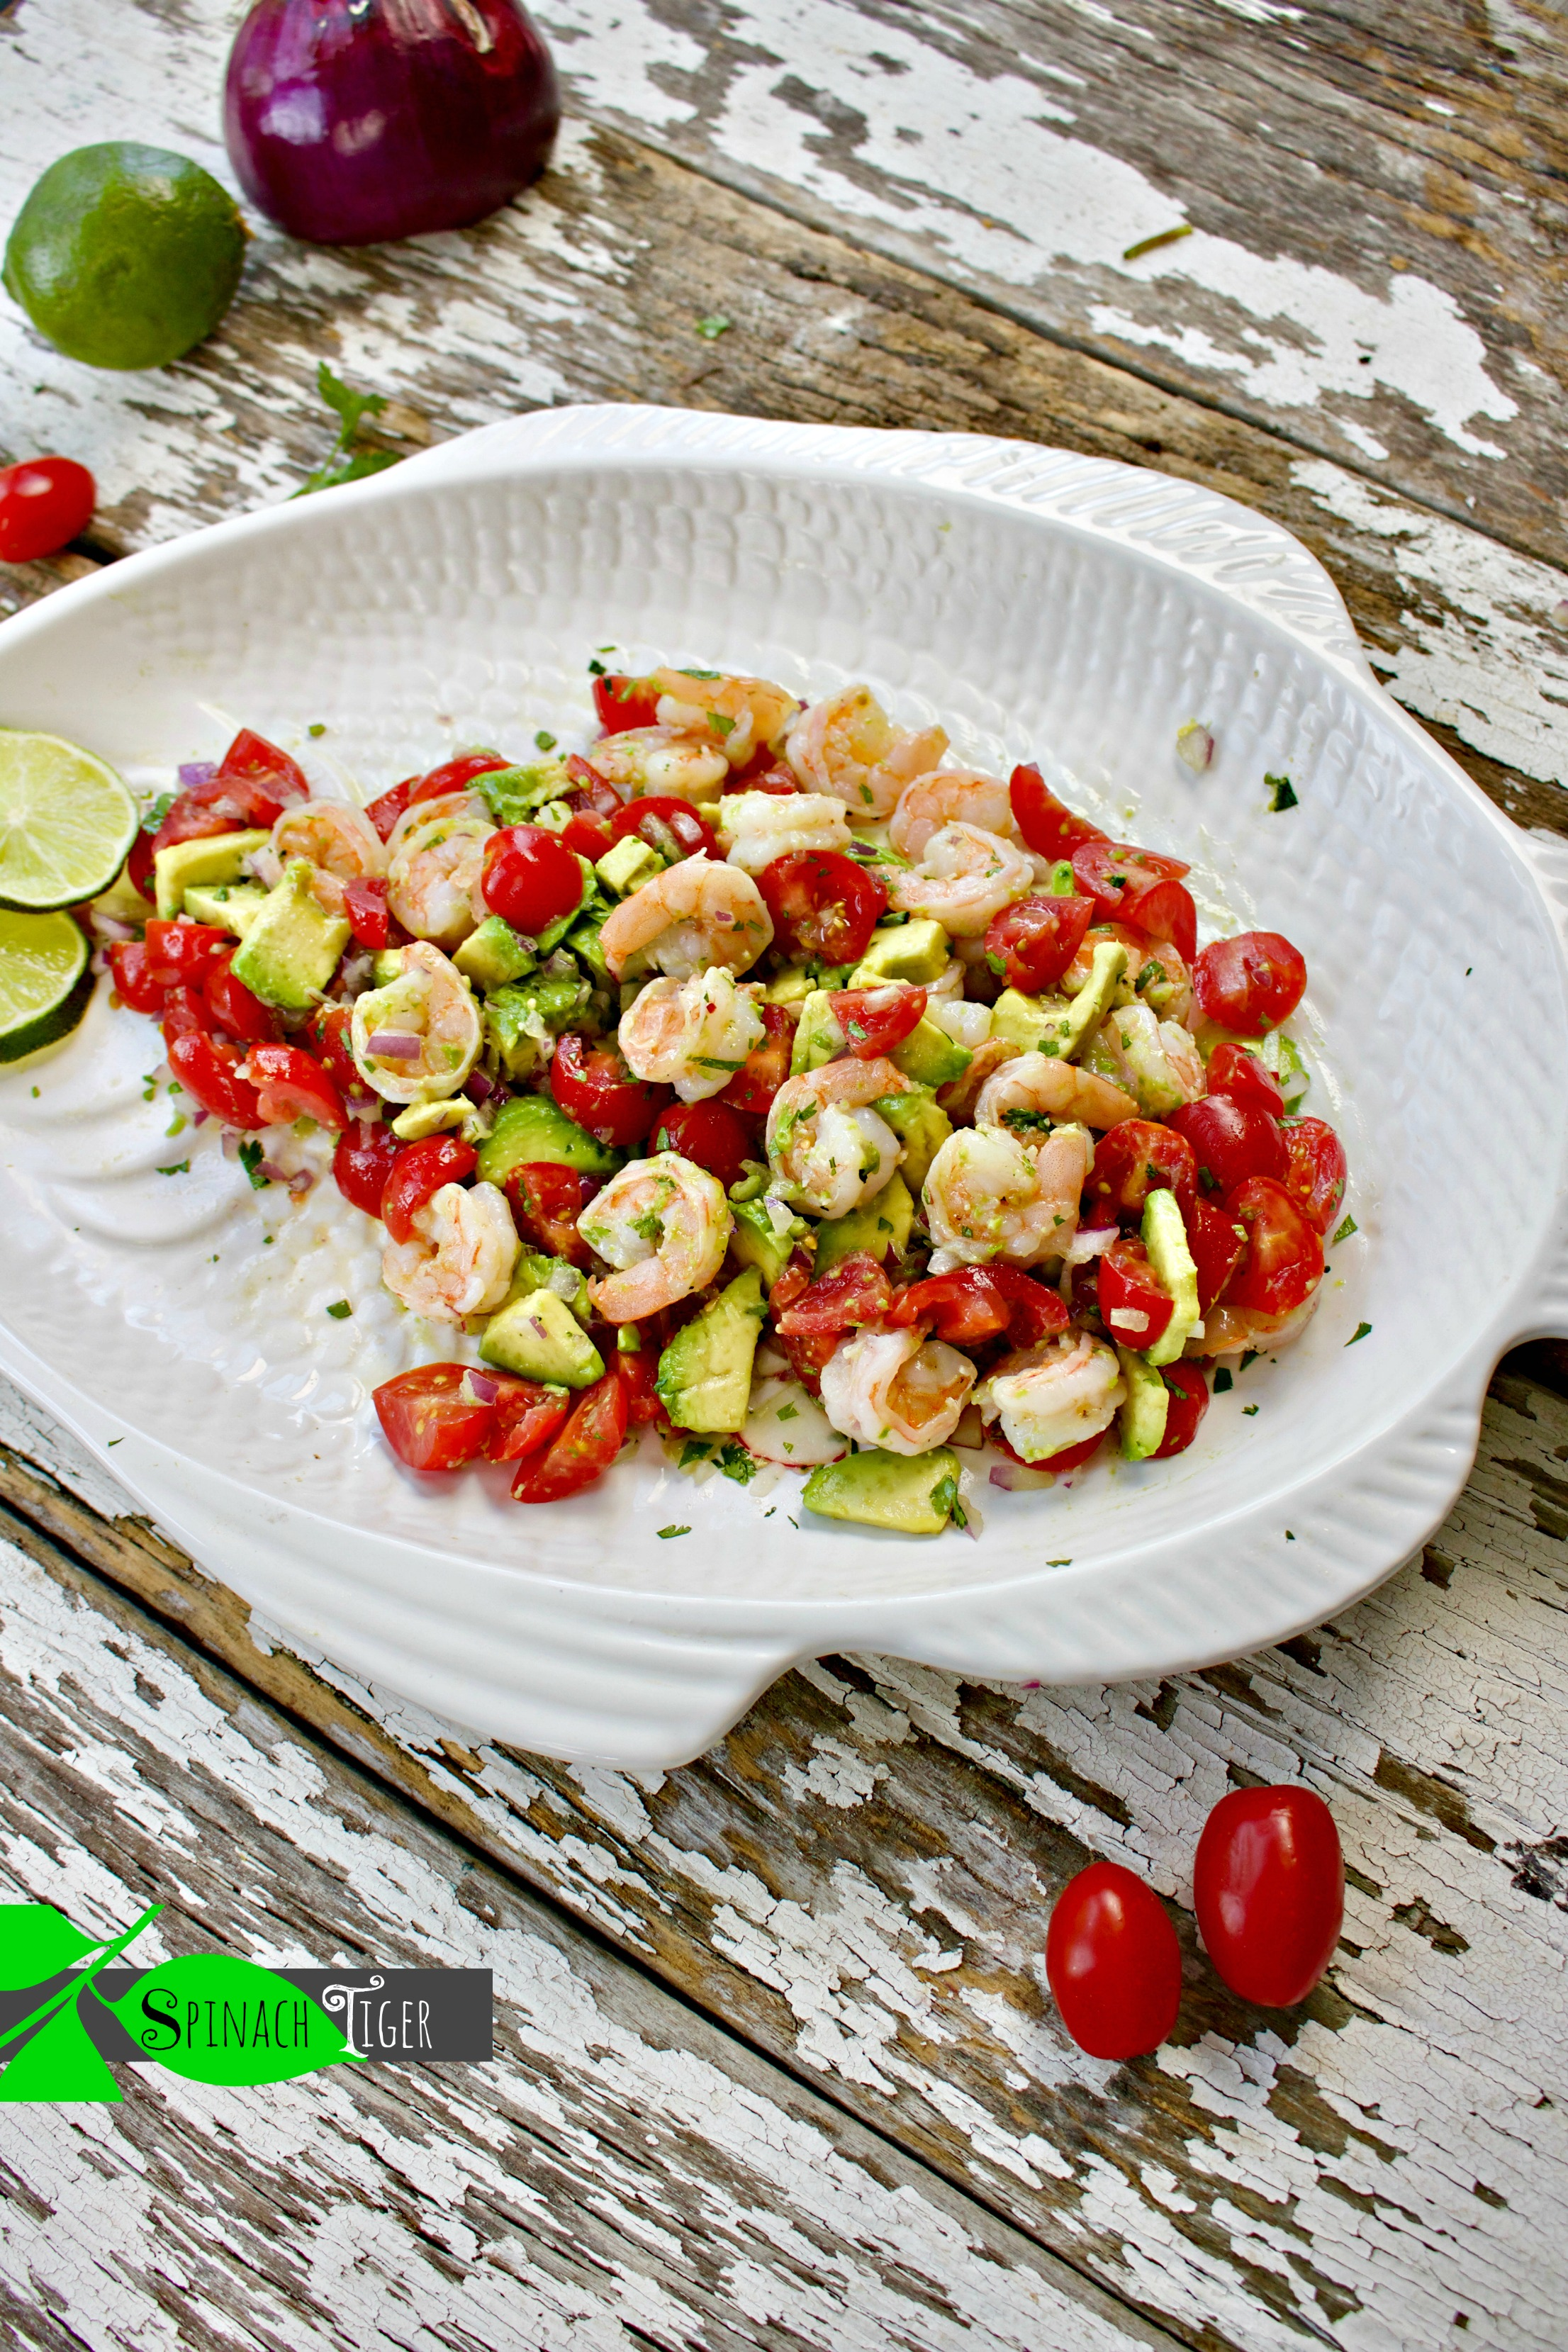 Healthy Shrimp Avocado Salad Recipe from Spinach Tiger